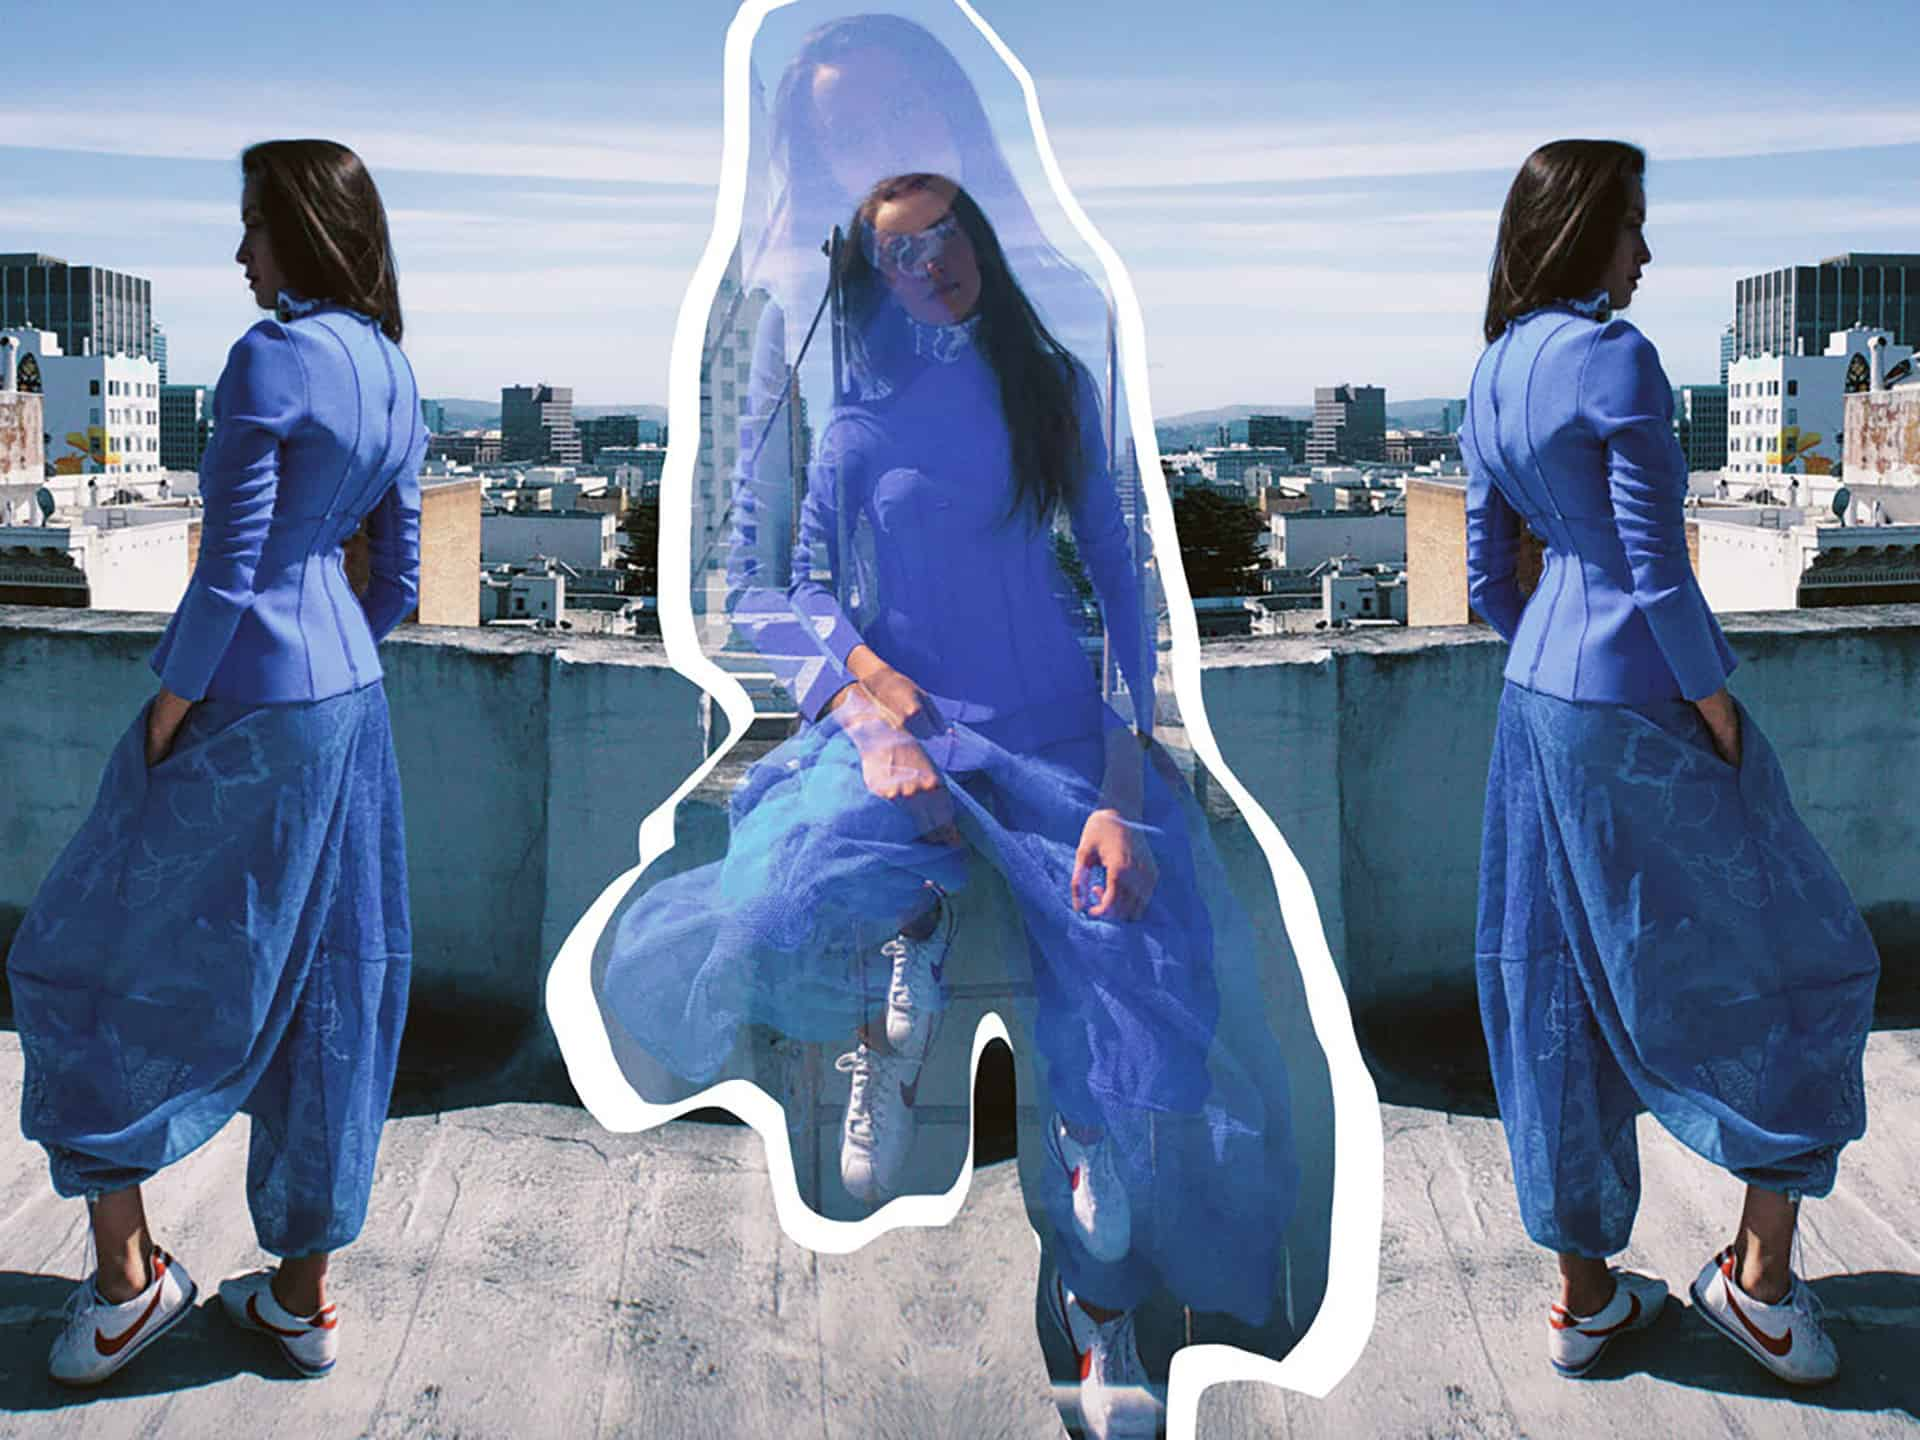 Featured work by Academy of Art University Fashion student Alice Mitchell